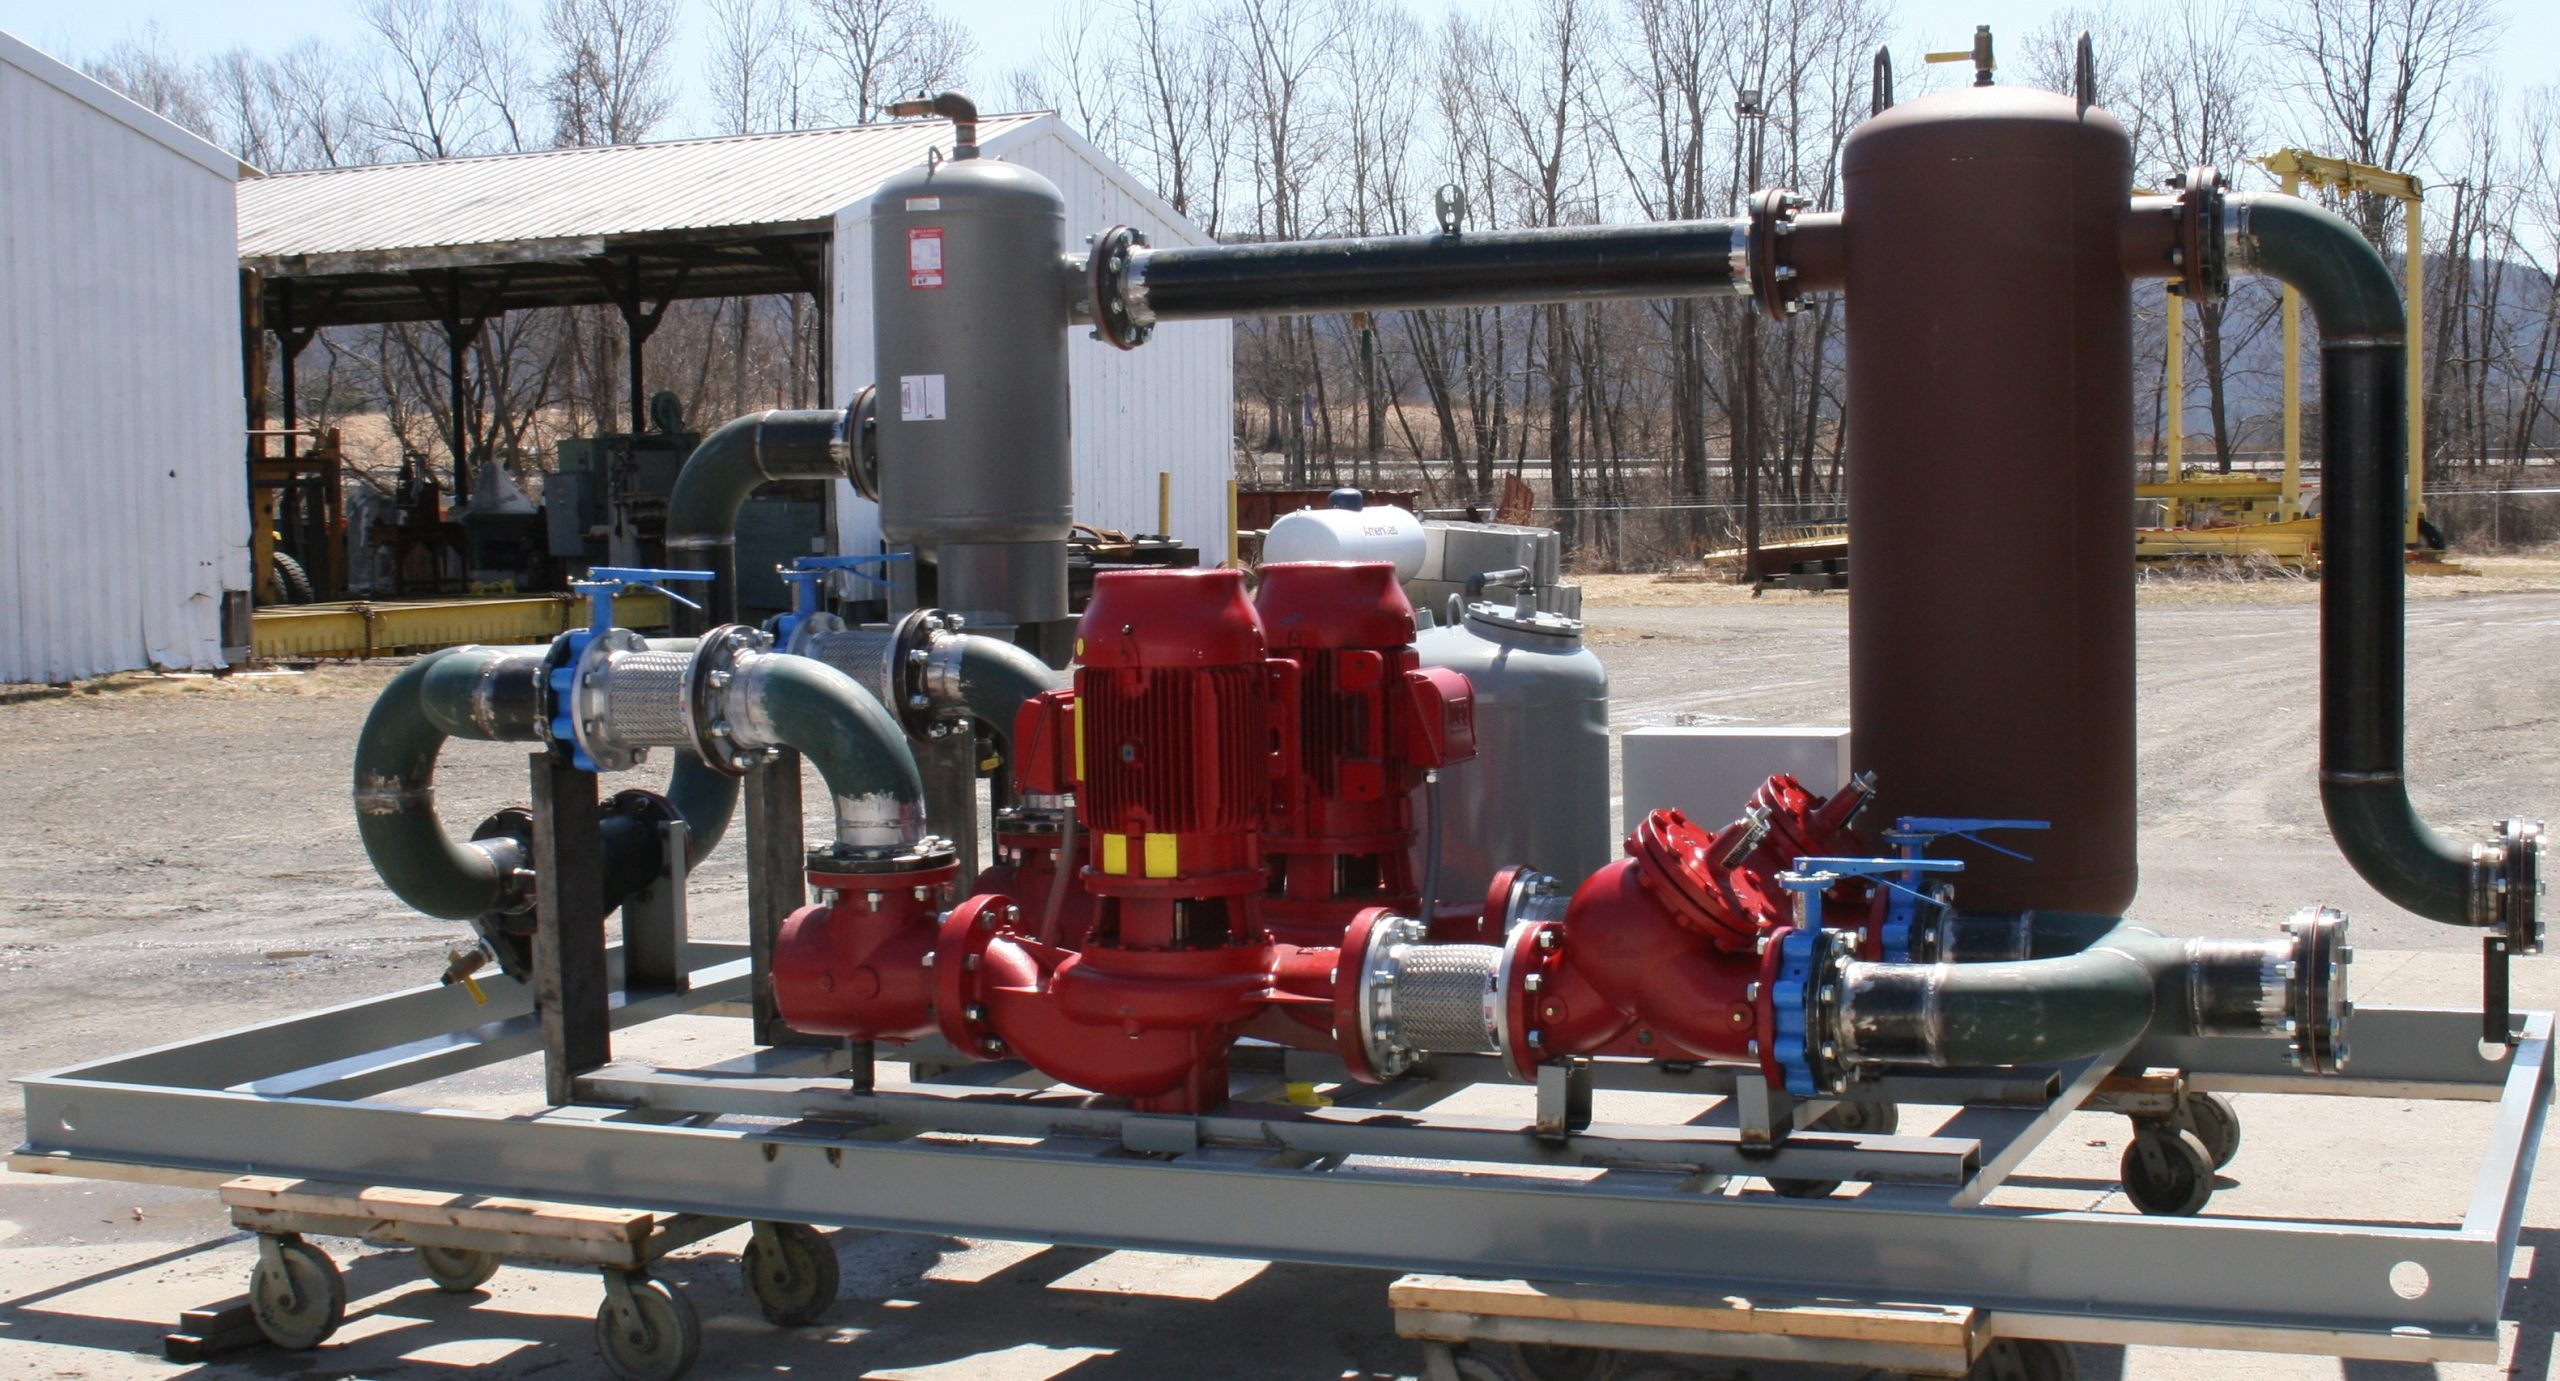 Turn-key pump skid assembly for connection to chiller machine. Application is for a gas field compressor station.